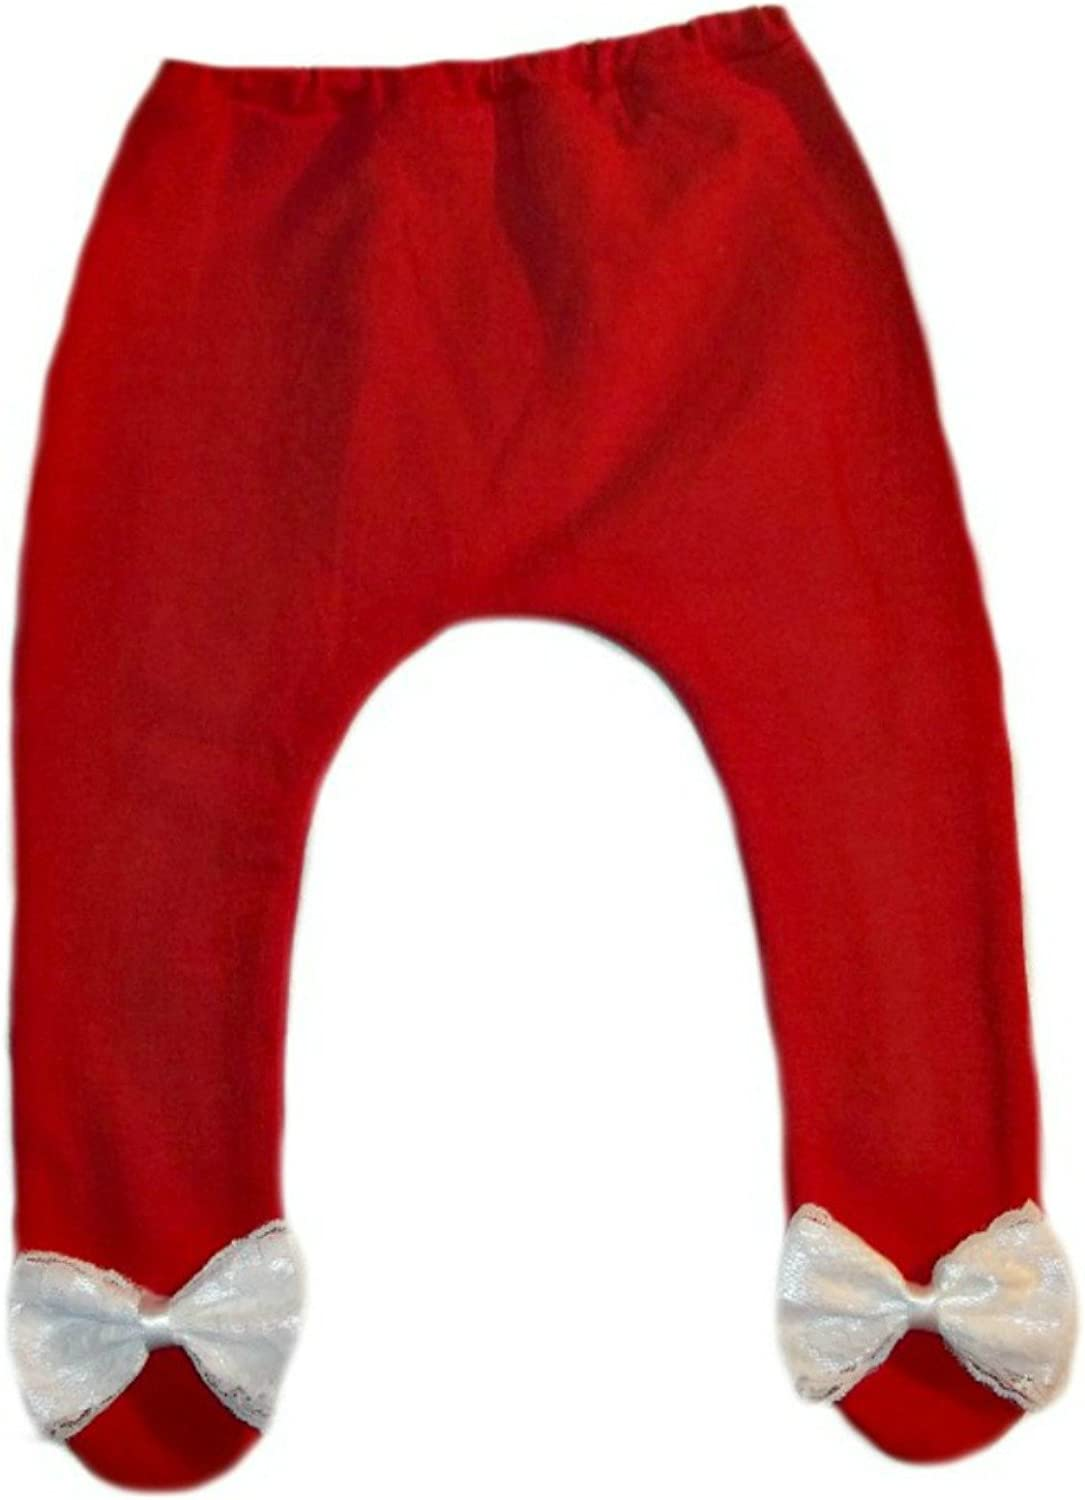 Jacquis Baby Girls Red Tights with White Lace Bows